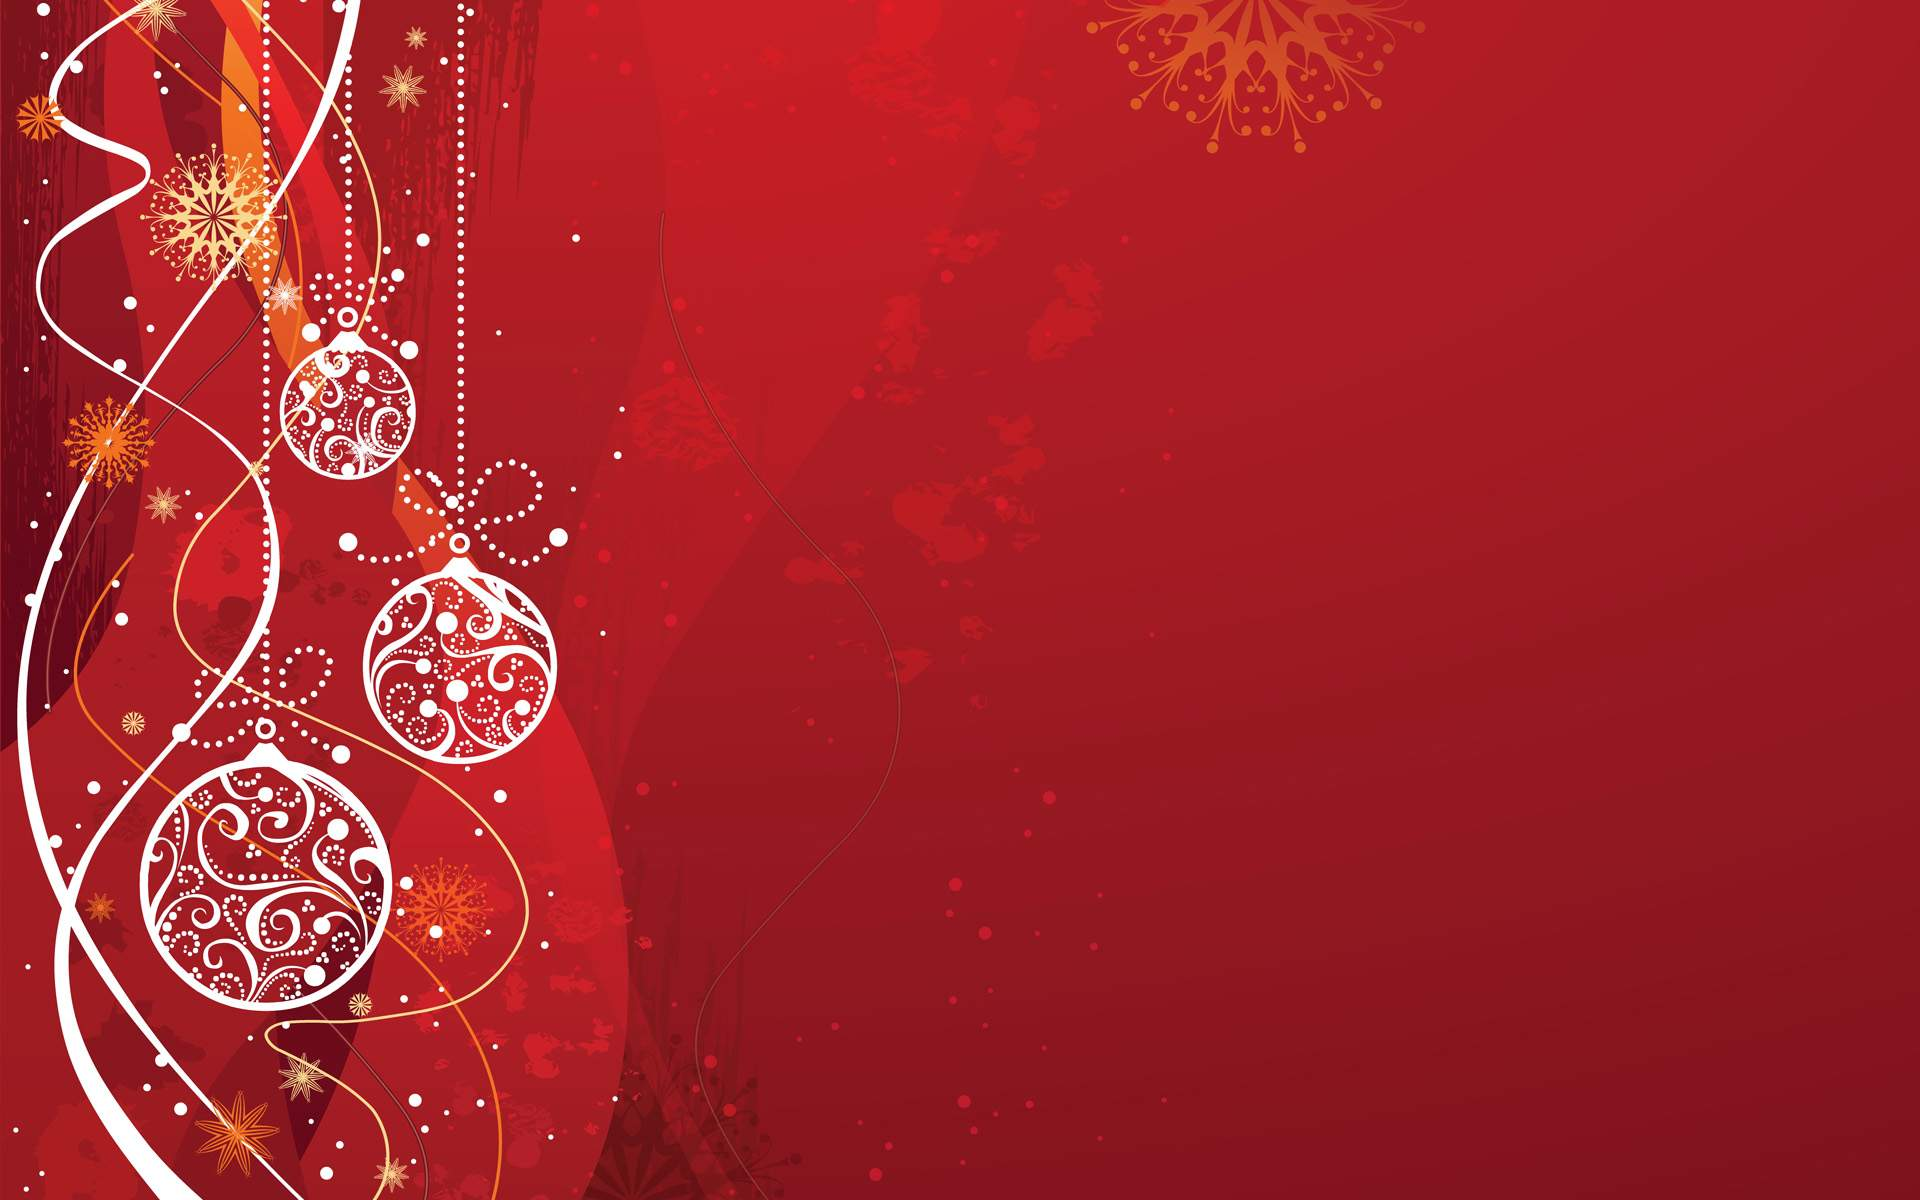 Christmas Backgrounds Download 1920x1200